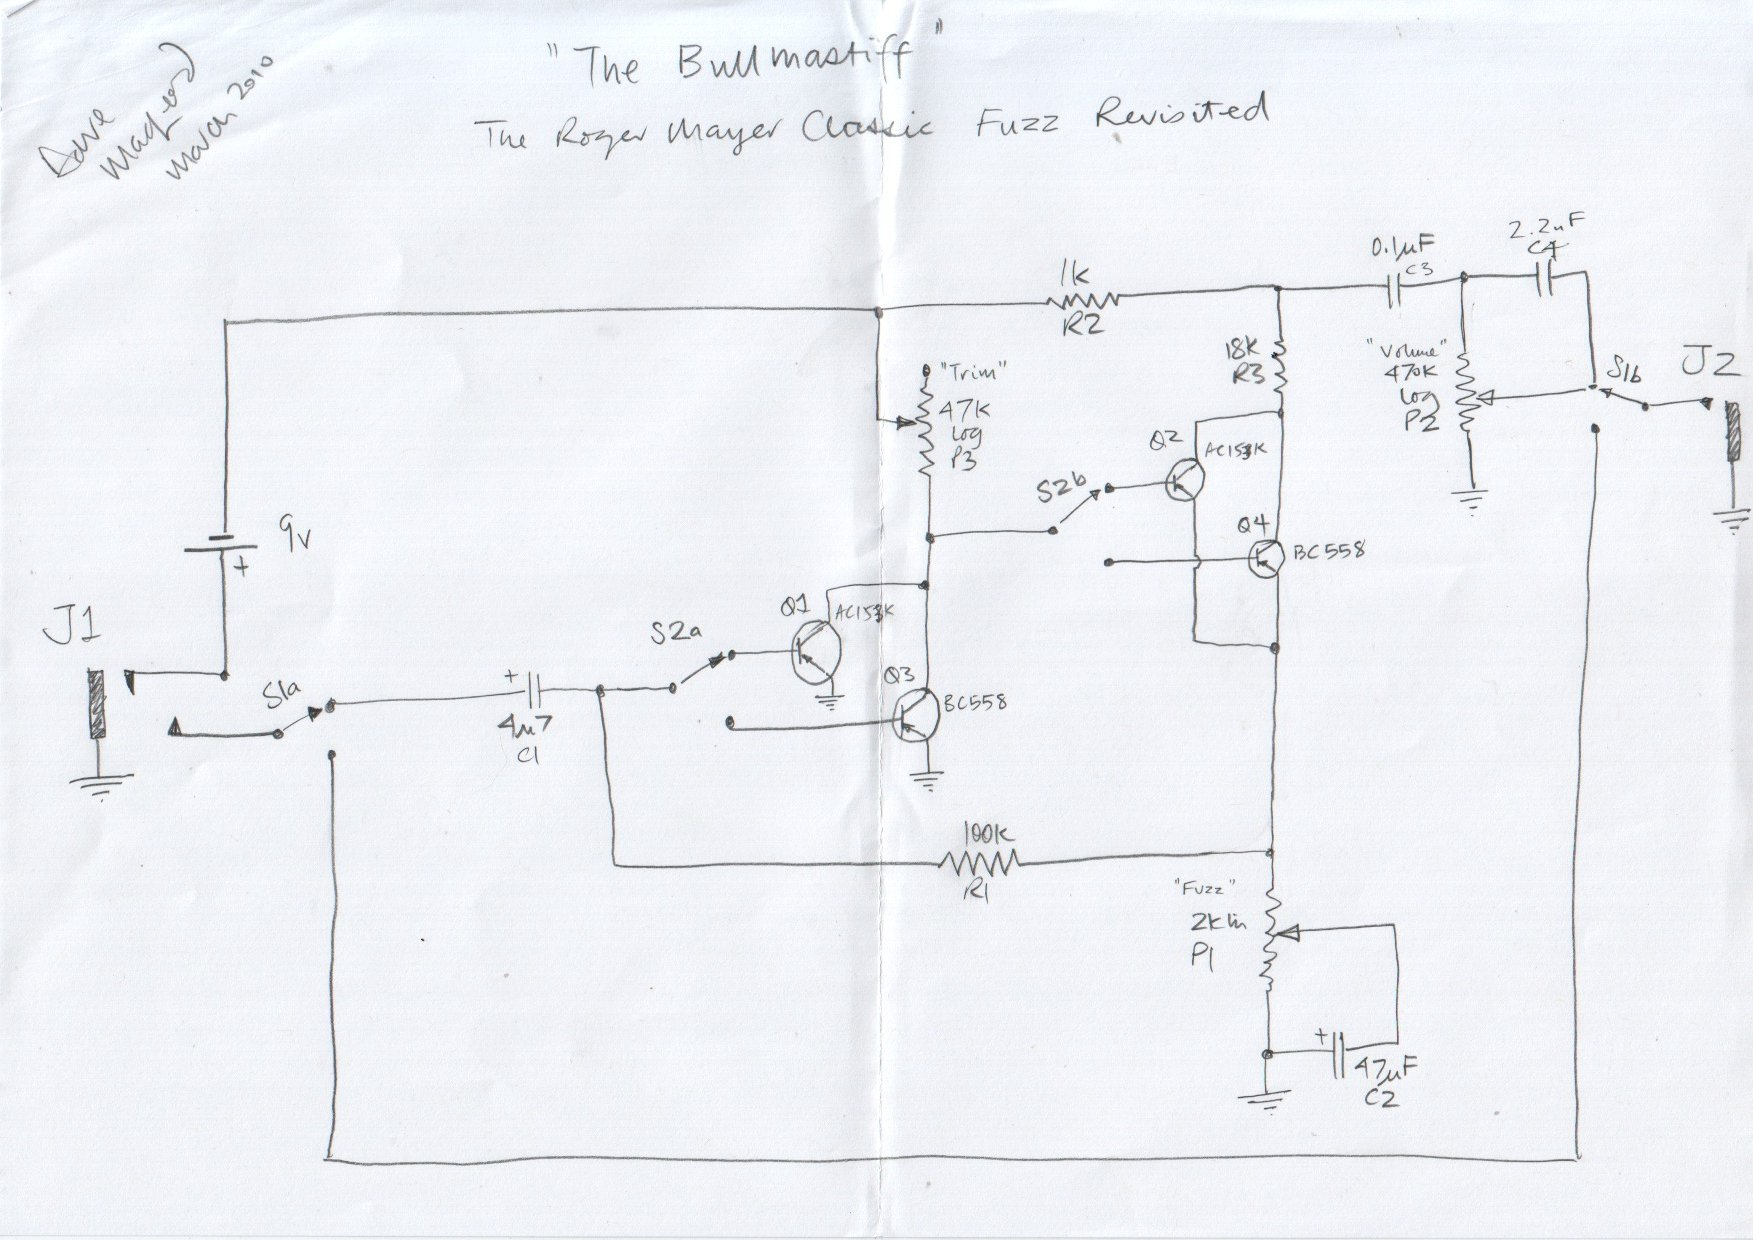 The Bullmastiff: A DIY Fuzz Pedal